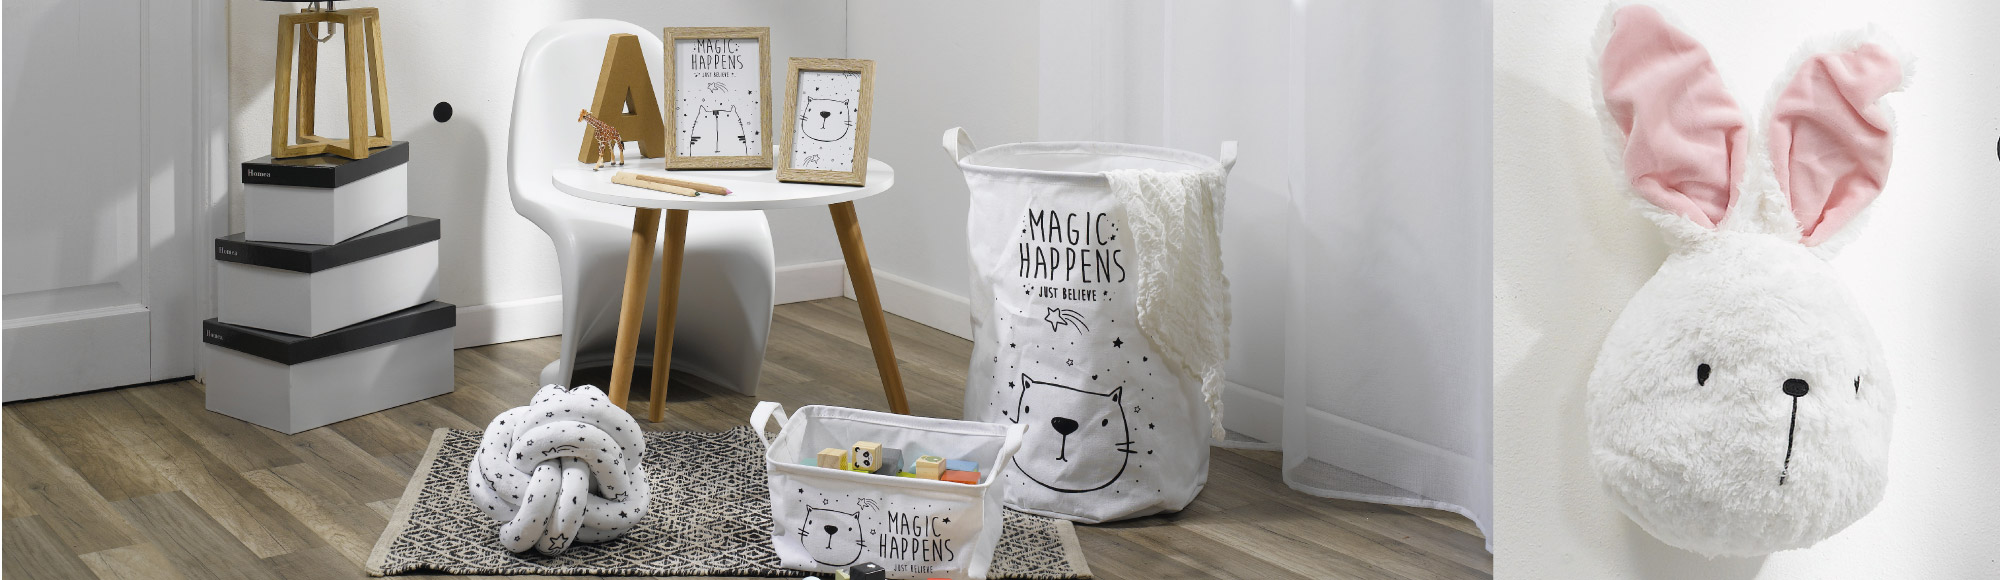 U10 - Homea - Decoration - Collection - Wild Kids